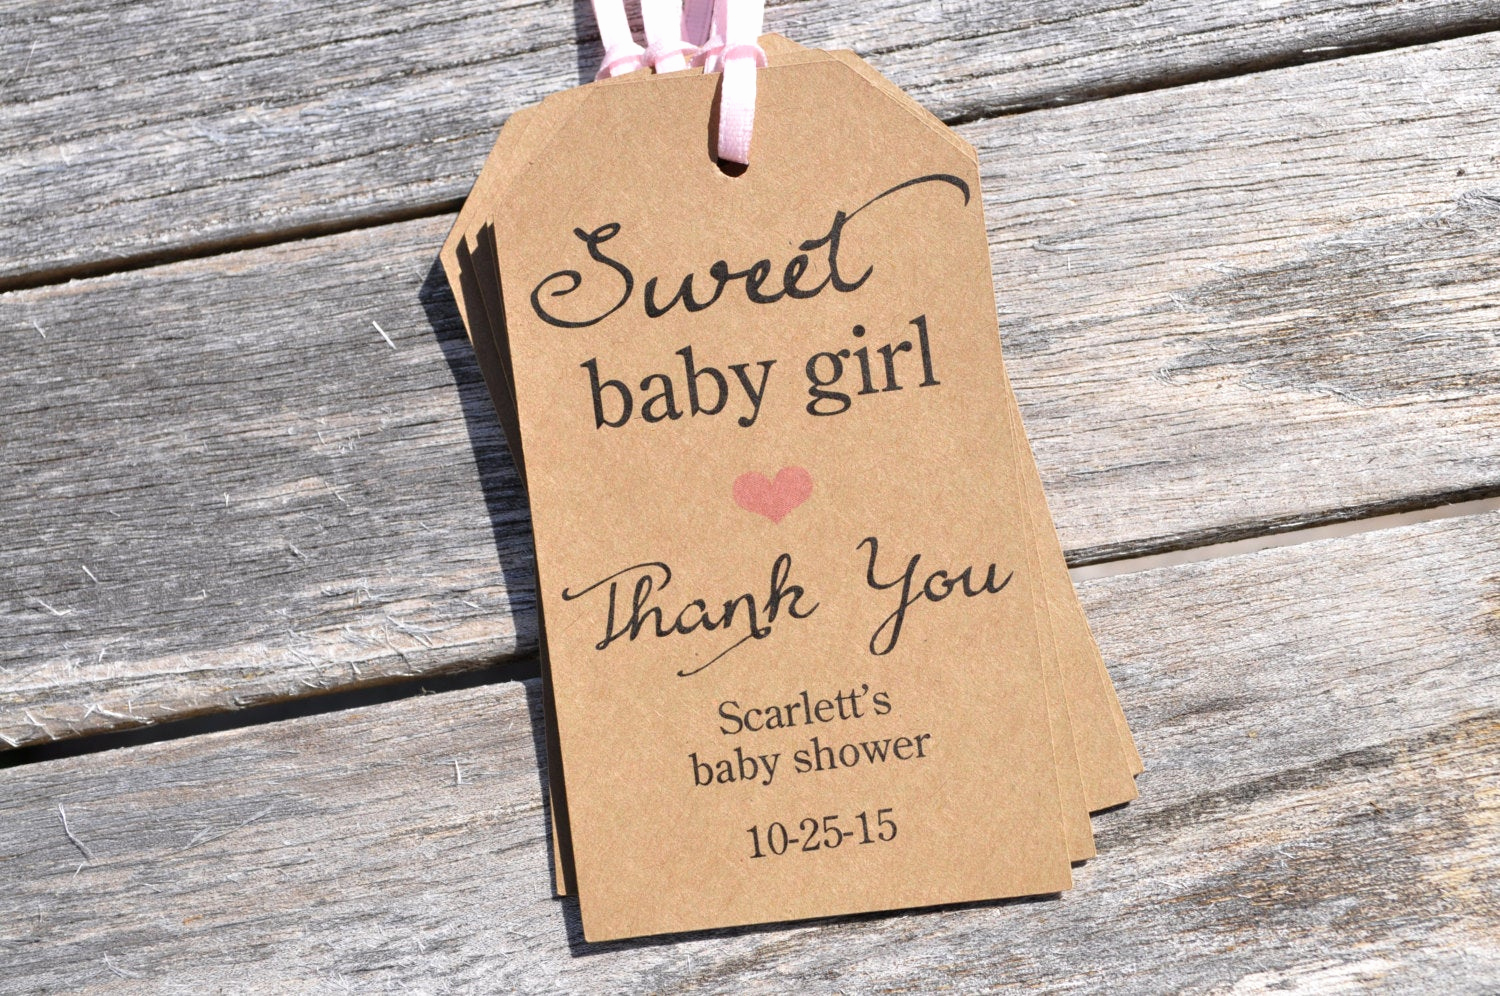 Baby Shower Thank You Tags Elegant Rustic Baby Shower Favor Tags Sweet Baby Girl Thank You